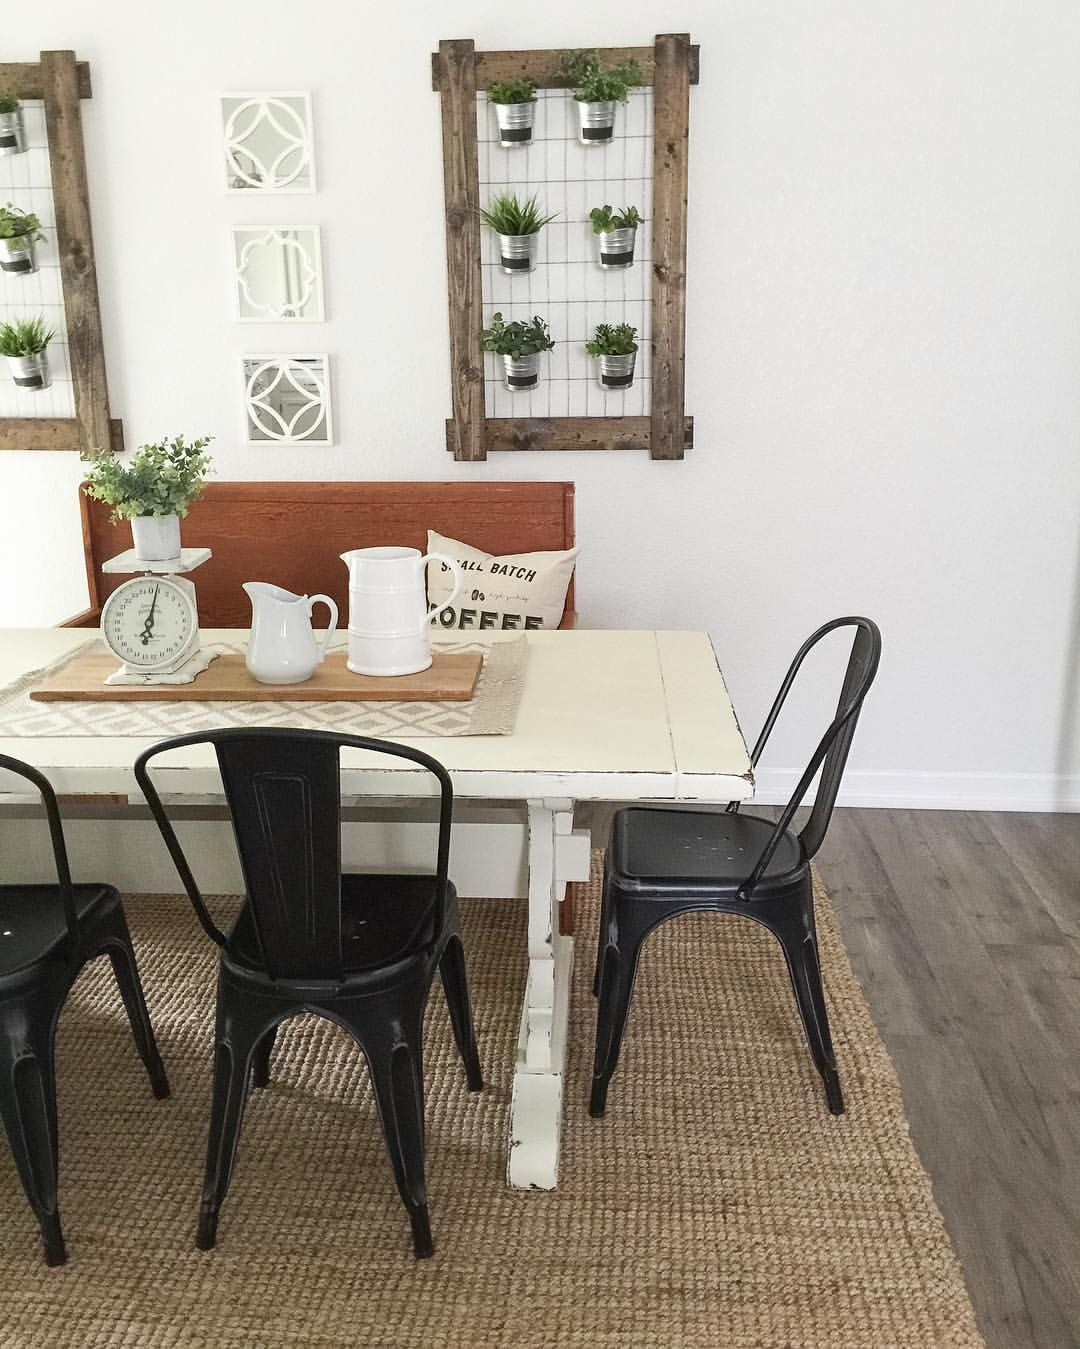 Pictures Of Rug In Eating Area Of Kitchen Google Search Modern Farmhouse Dining Room Kitchen Table Decor White Farmhouse Table